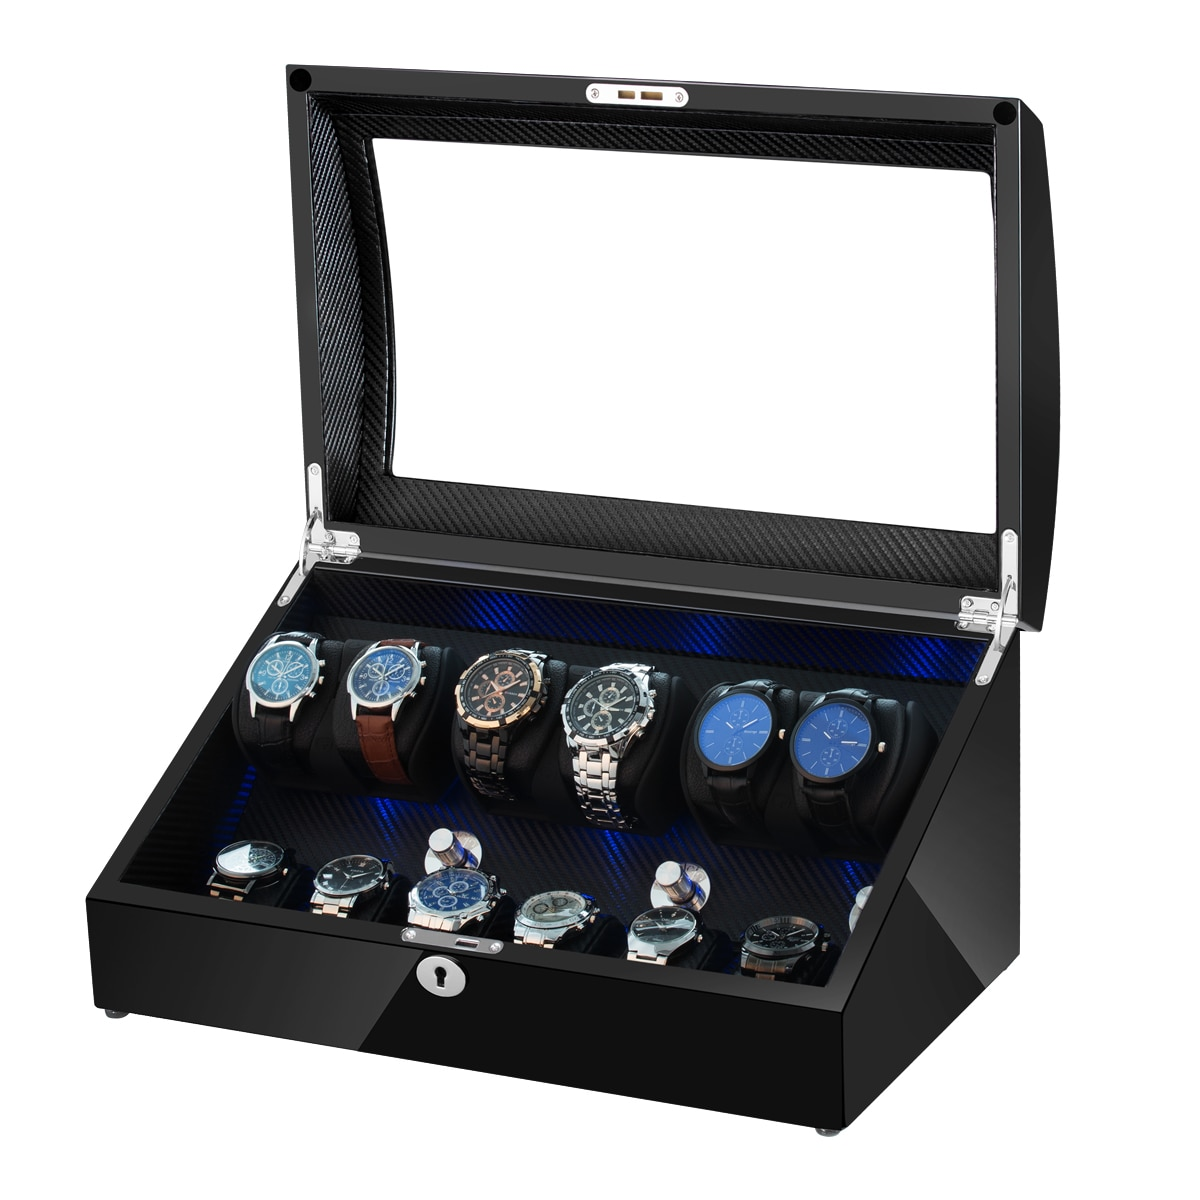 6+6 Automatic Watch Winder Box PE Leather Watch Winding Winder Storage Watch Box Collection Display Quiet Motor With LED Light